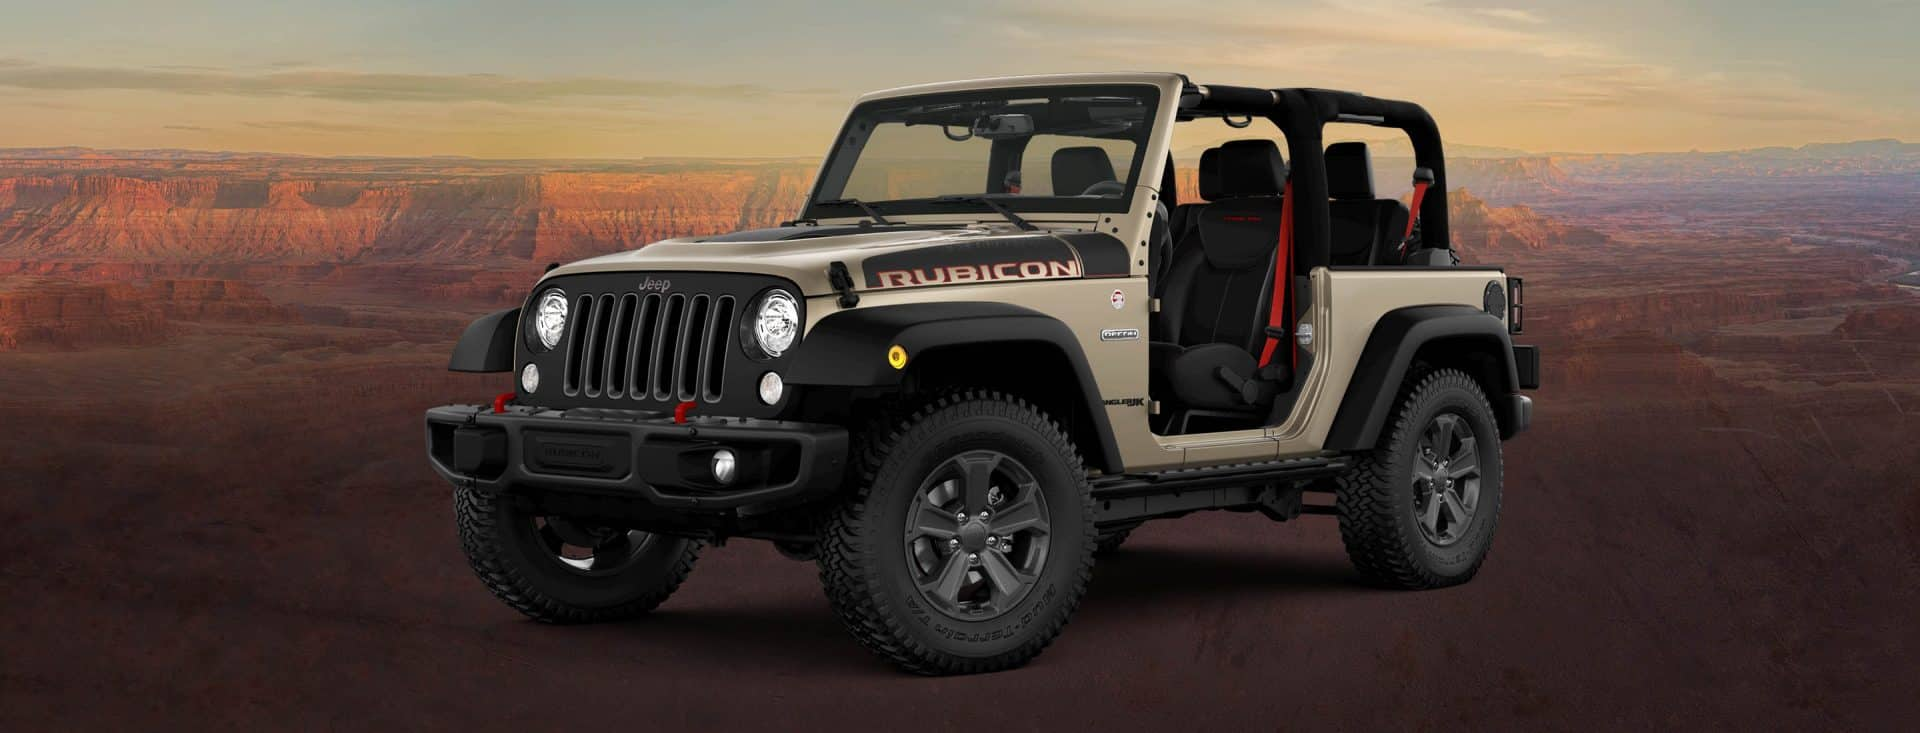 Jeep Wrangler JK Rubicon Recon 2018 - SUV Limited Edition